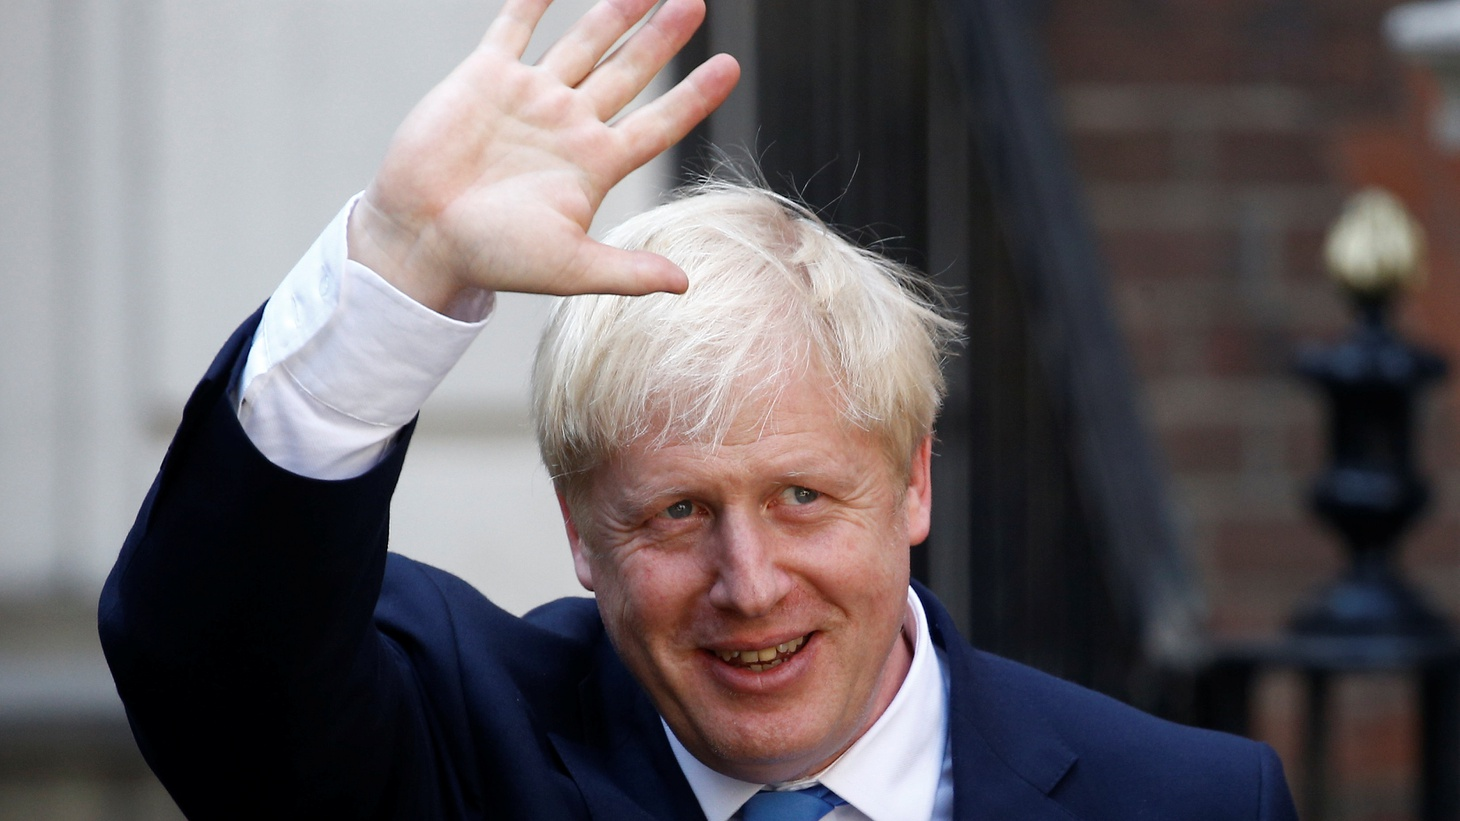 Boris Johnson, leader of the Britain's Conservative Party, leaves the party's headquarters in London.